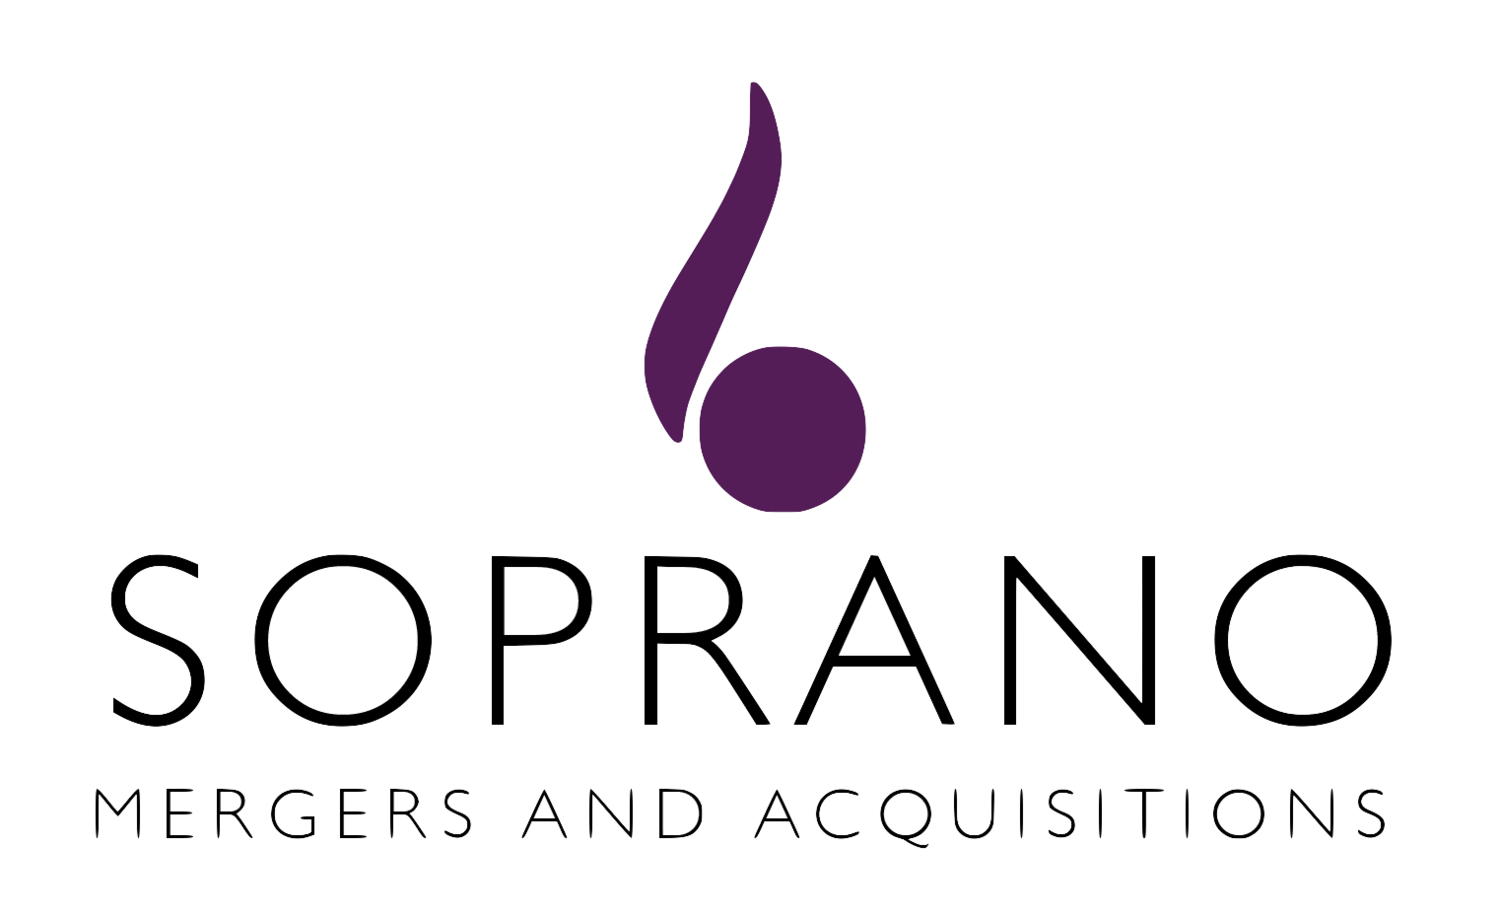 Soprano Mergers & Acquisitions